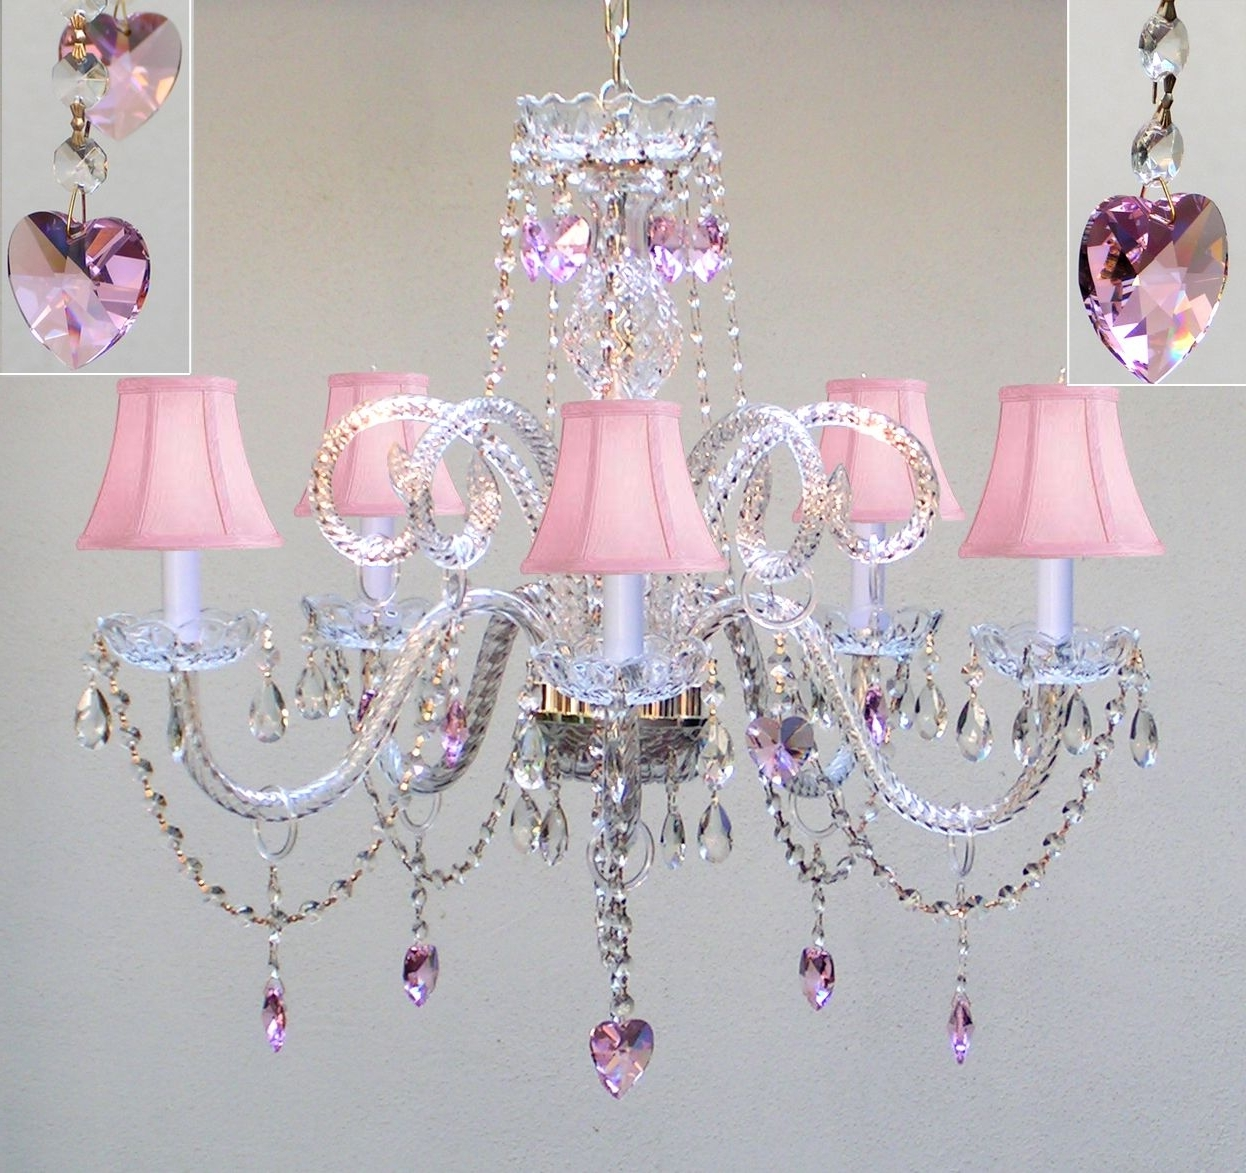 2019 Purple Crystal Chandelier Lights Inside For A Little Girls Room! A46 Sc/387/5/pinkhearts Chandeliers (View 1 of 20)